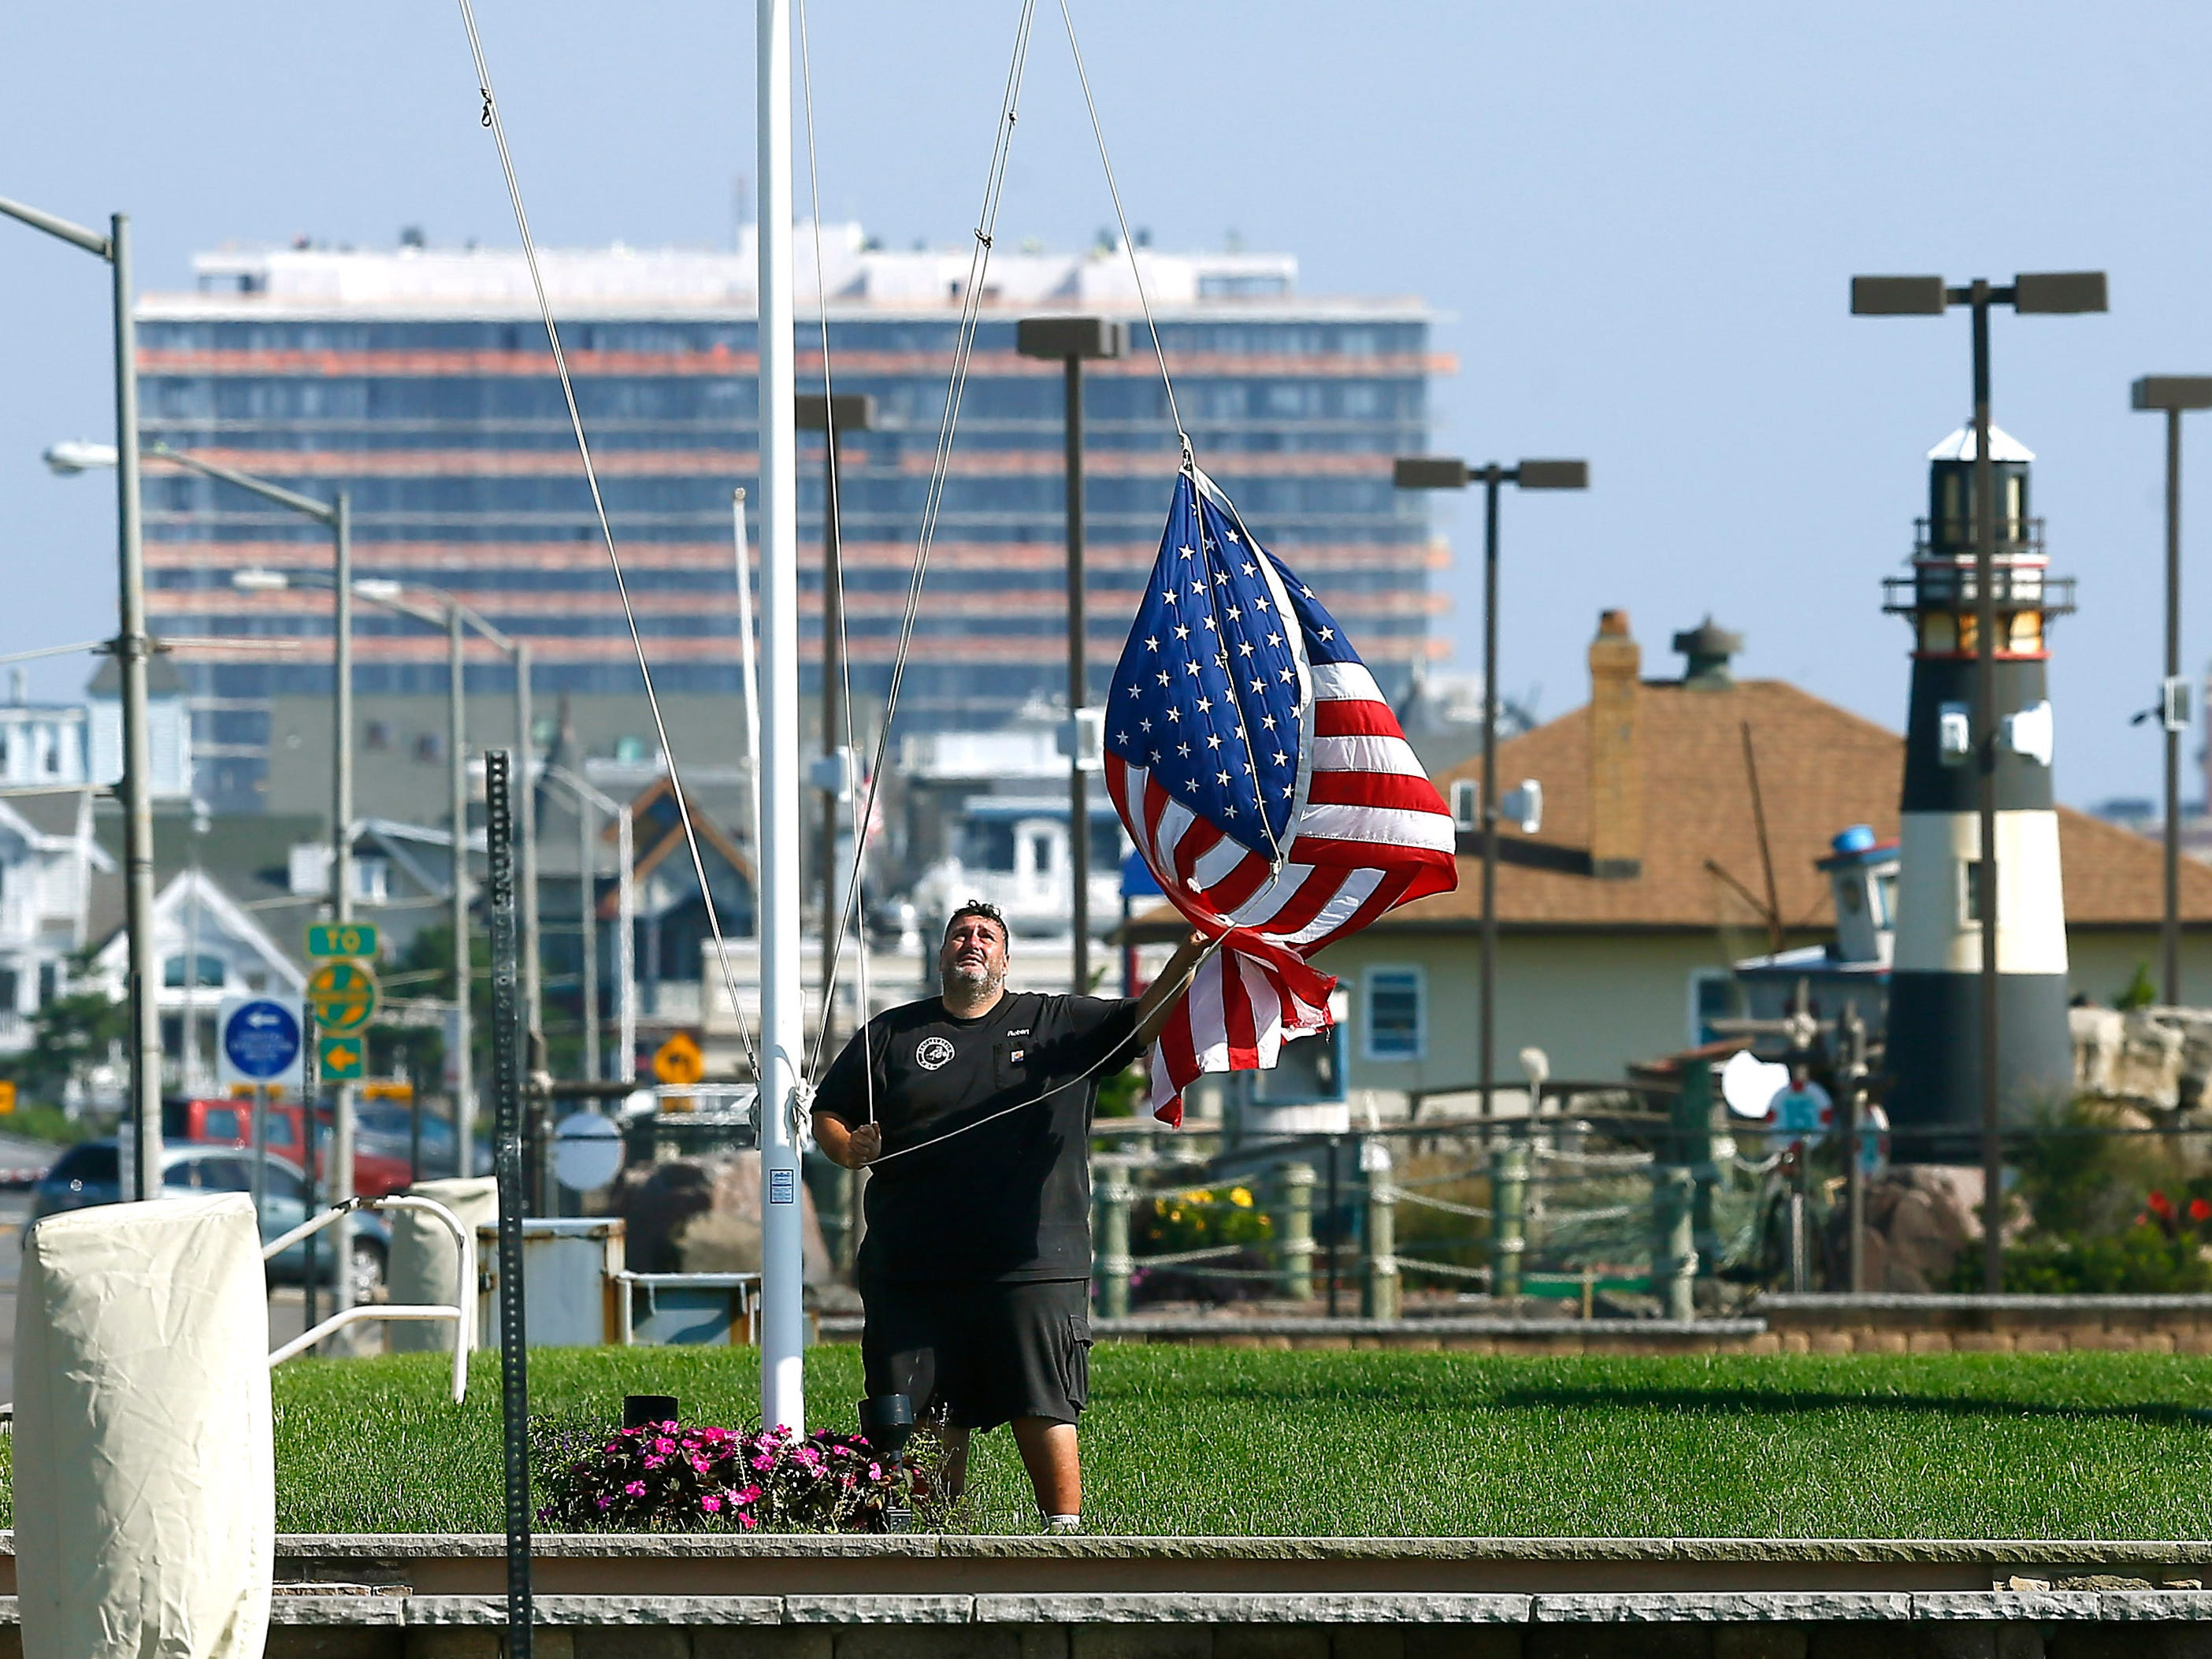 A man raises the American flag Wednesday morning at the Bill Nunnally Lifeguard Tower on Bradley Beach. Summer shore guide. September 19, 2018, Bradley Beach, NJ